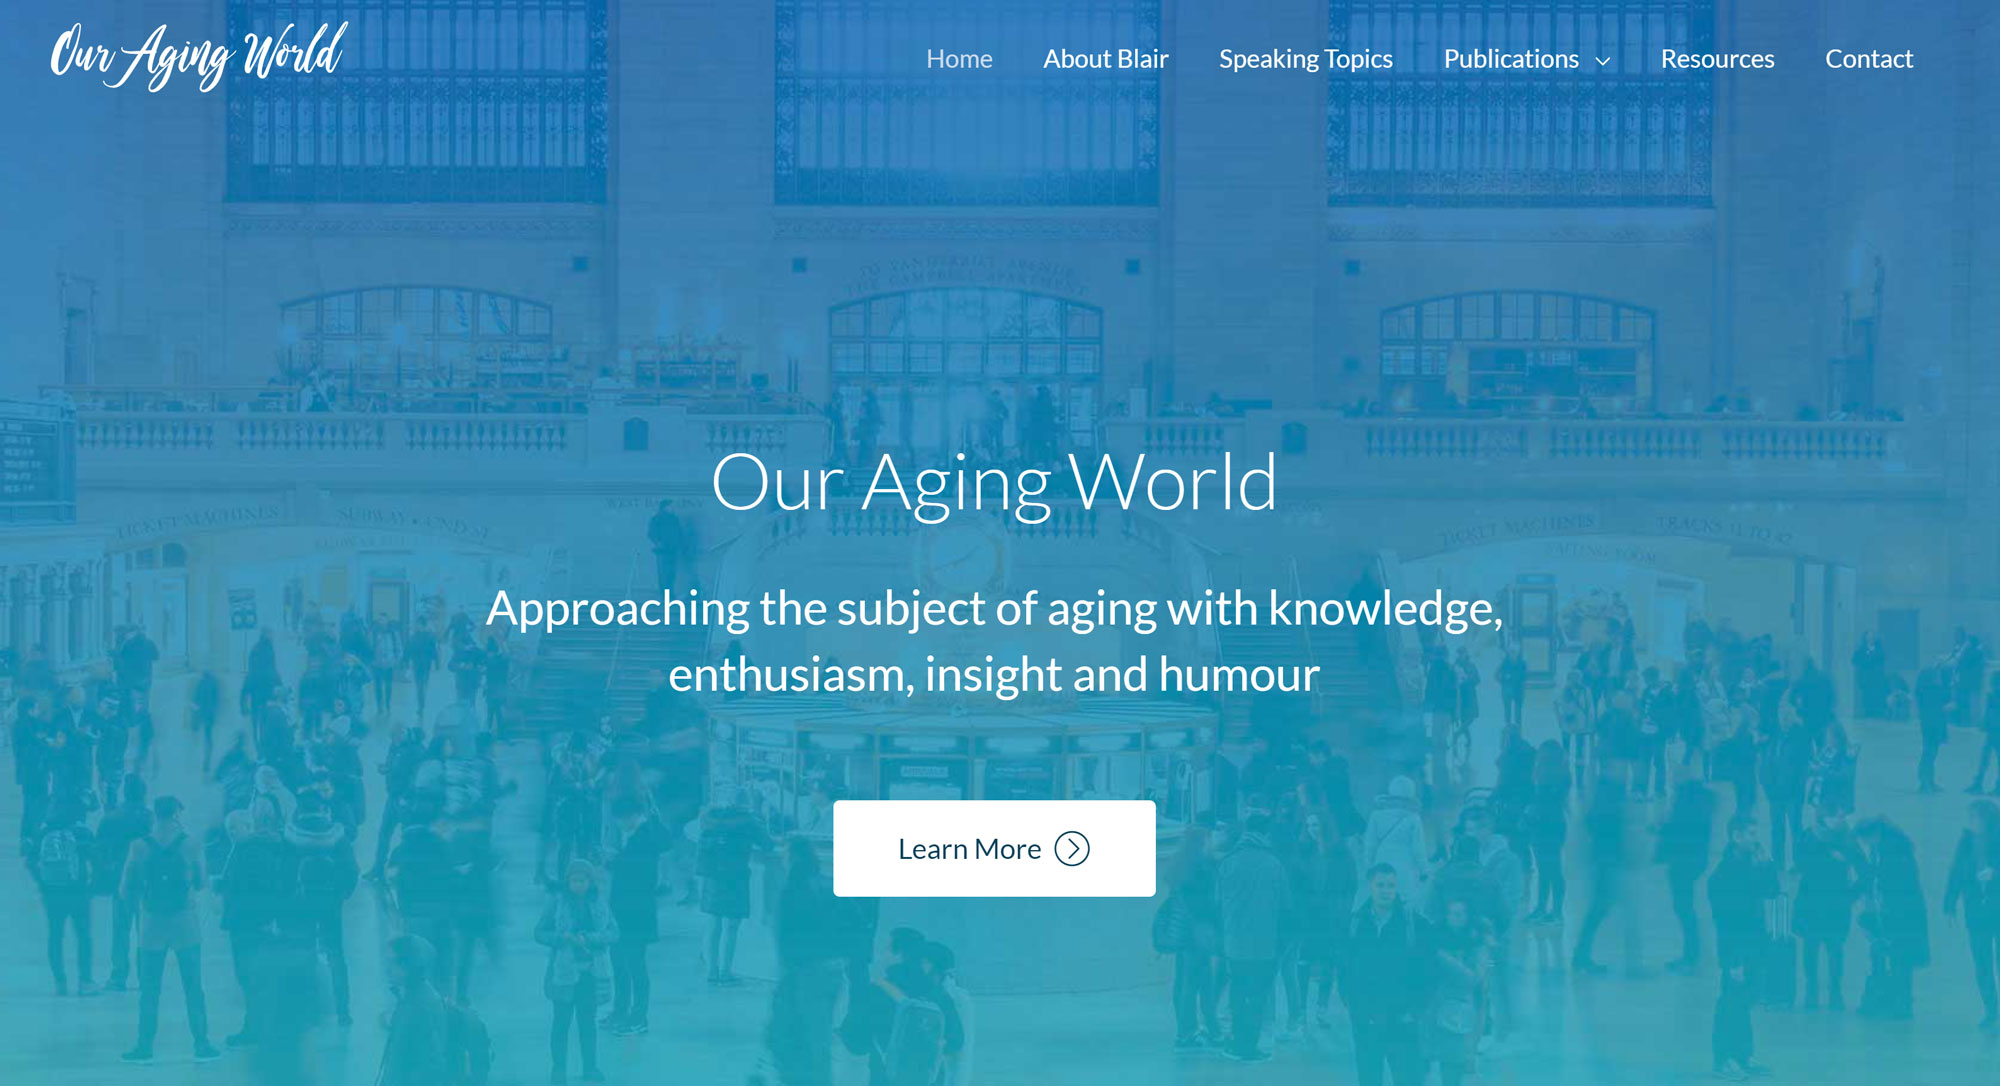 Our Aging World